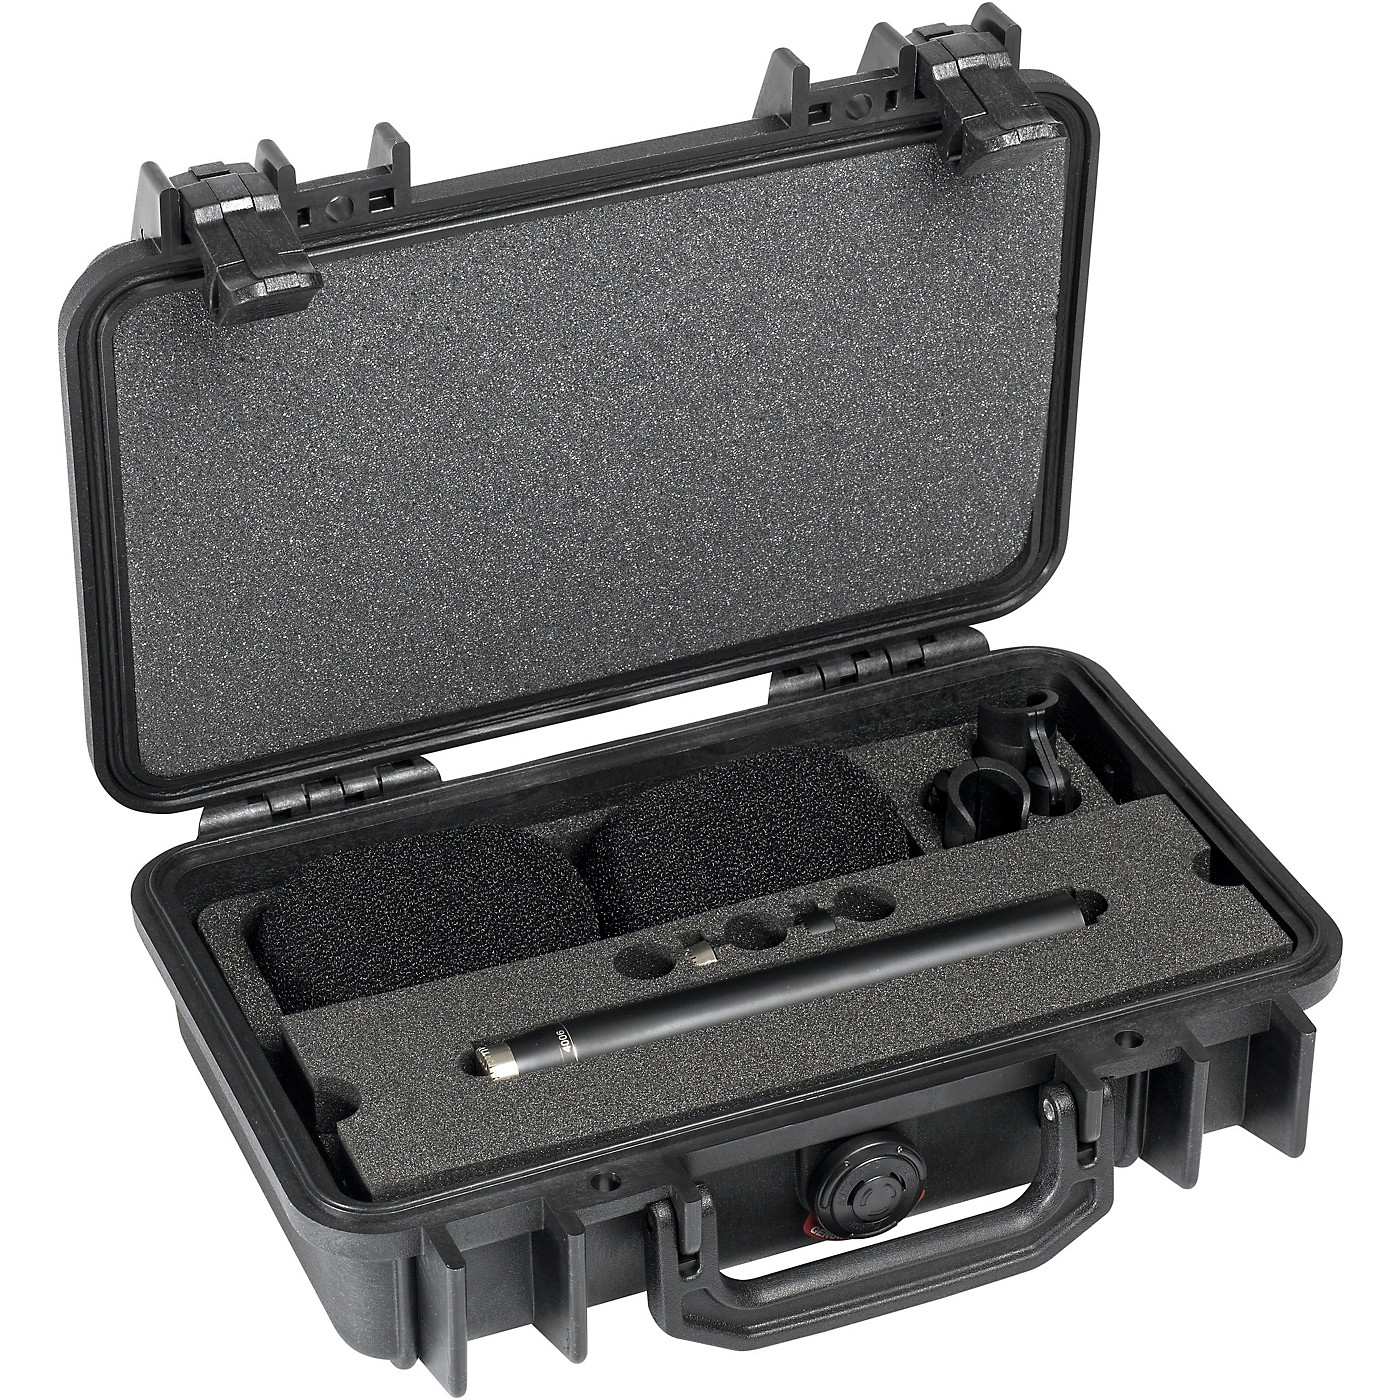 DPA Microphones d:dicate ST4006A Stereo Pair with Two 4006A with Clips and Windscreen in Peli Case thumbnail